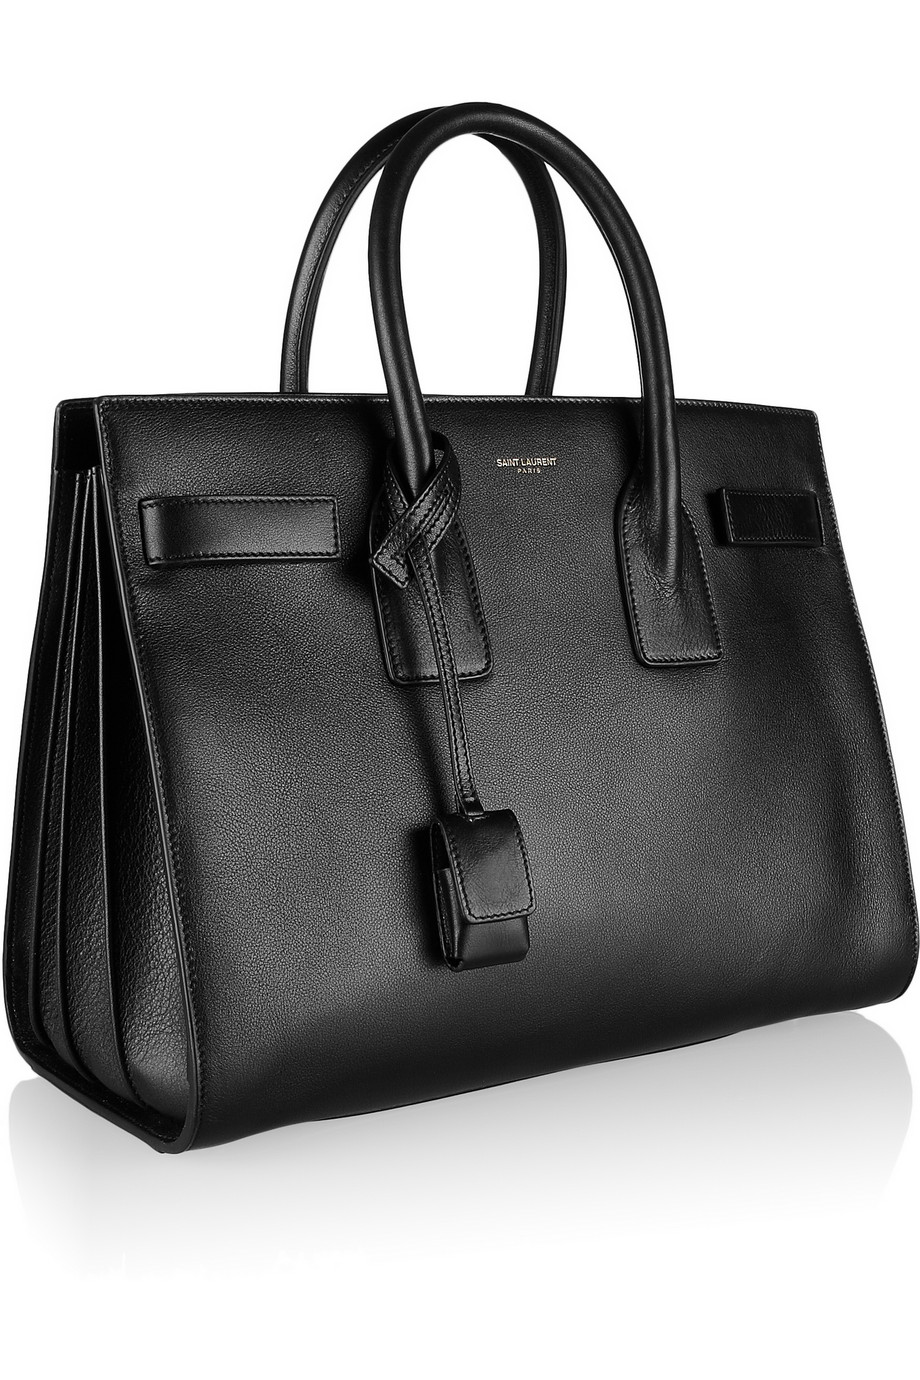 saint laurent sac de jour small leather tote in black nero lyst. Black Bedroom Furniture Sets. Home Design Ideas